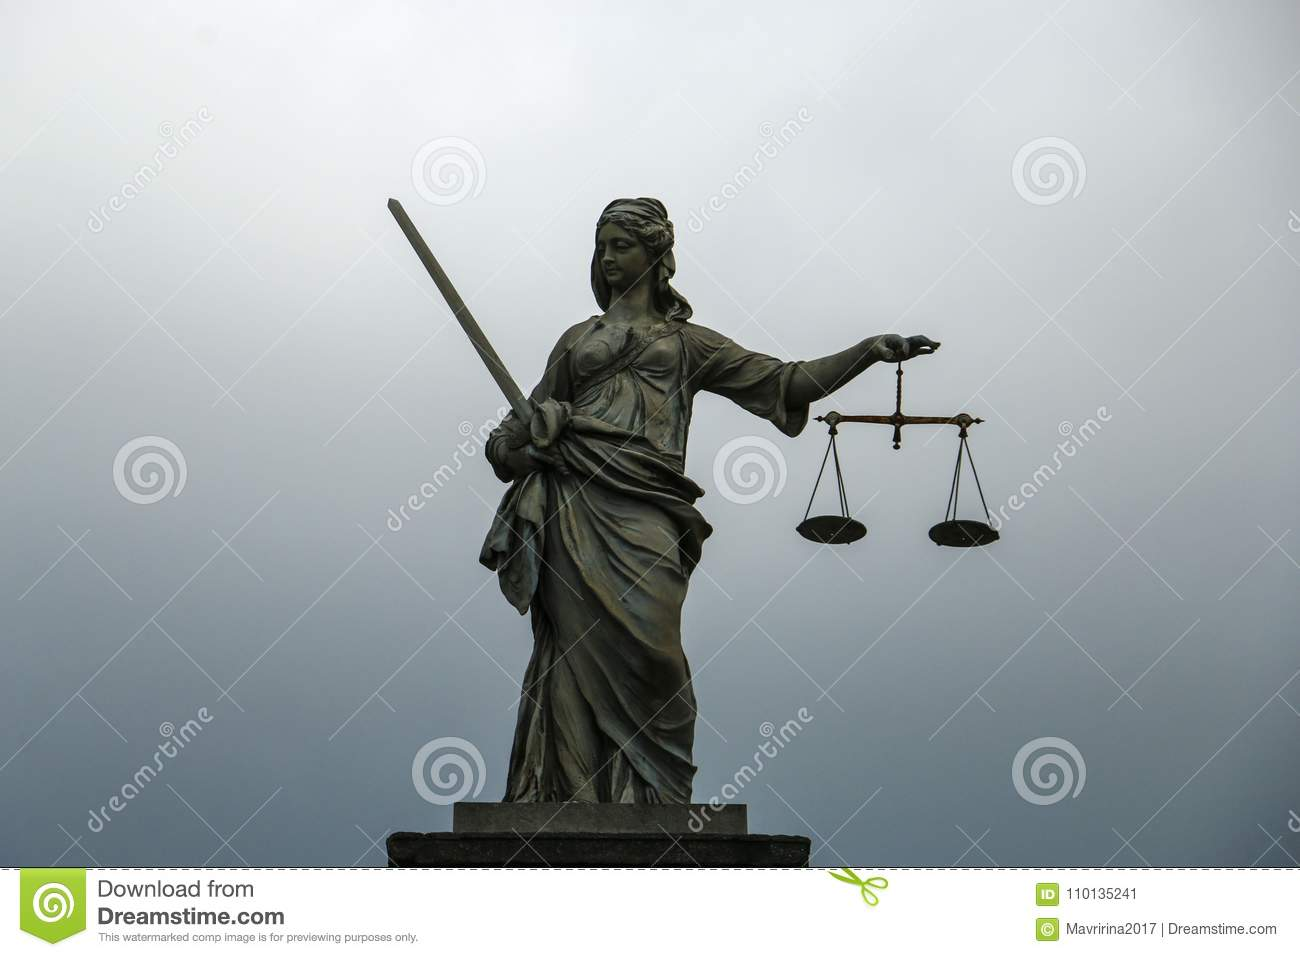 Statue of Themis, goddess of justice on a gray-blue background